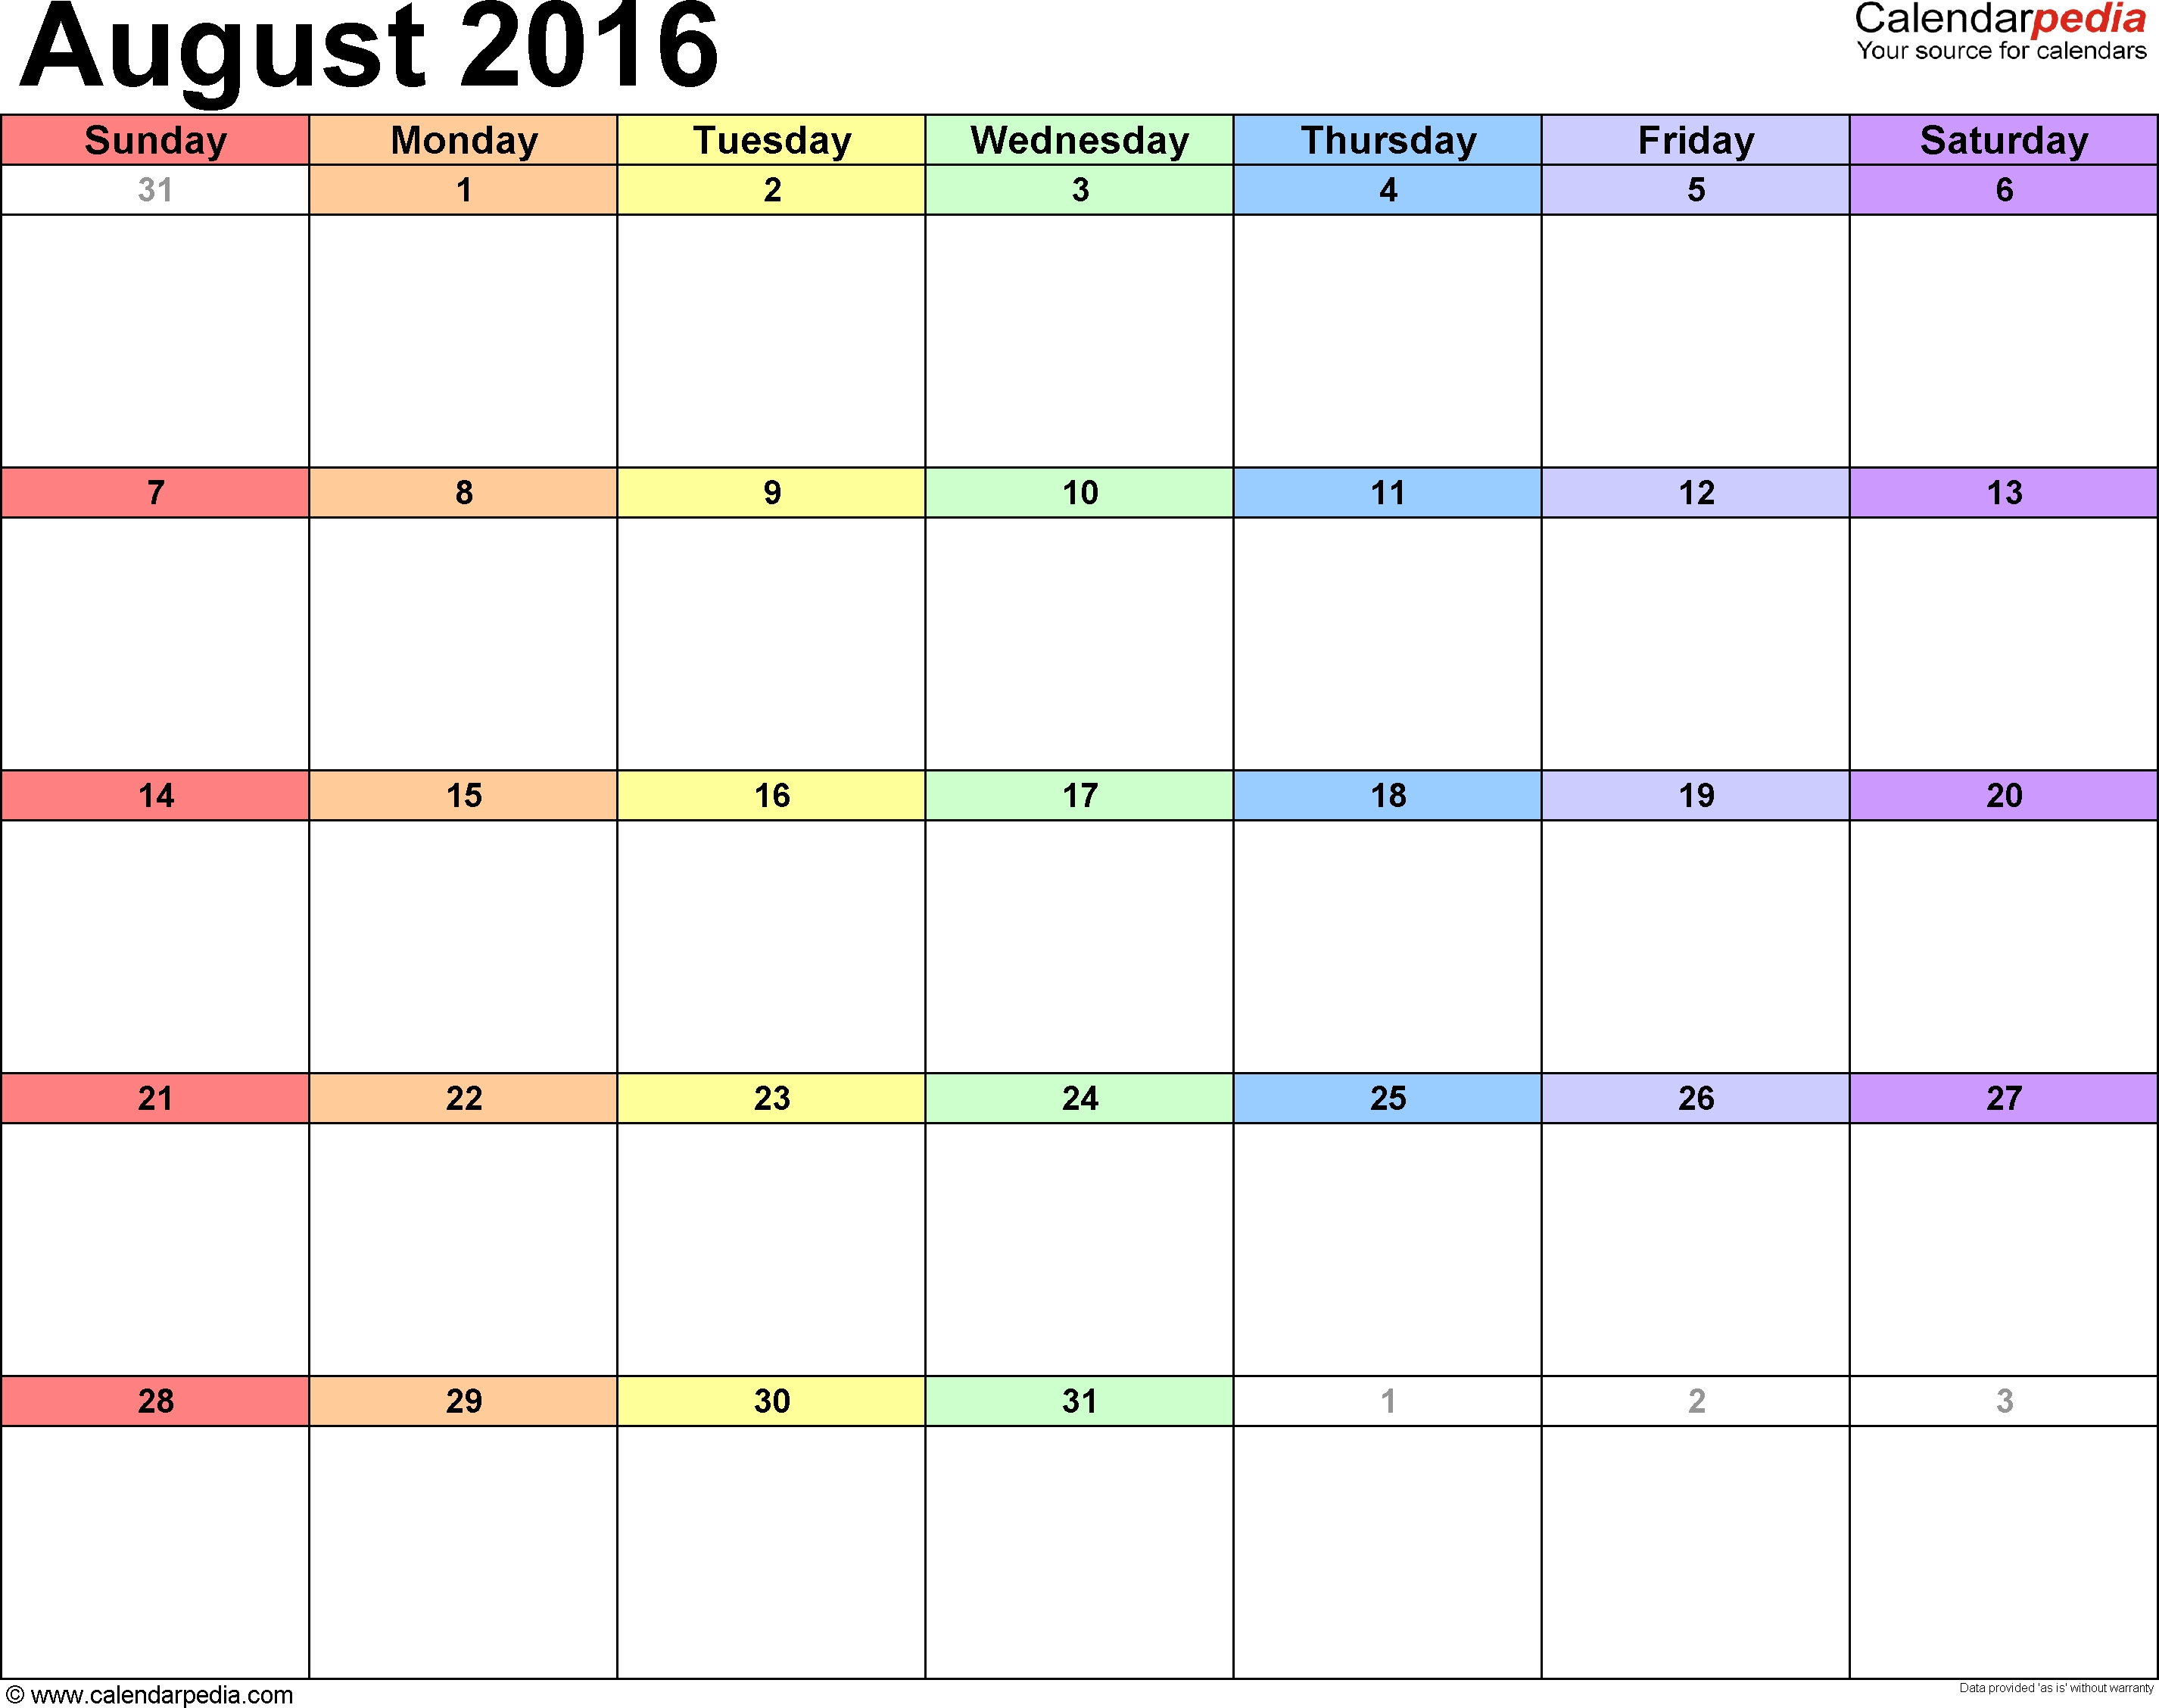 August 2016 Calendars For Word, Excel & Pdf regarding Month Of August On A Calendar